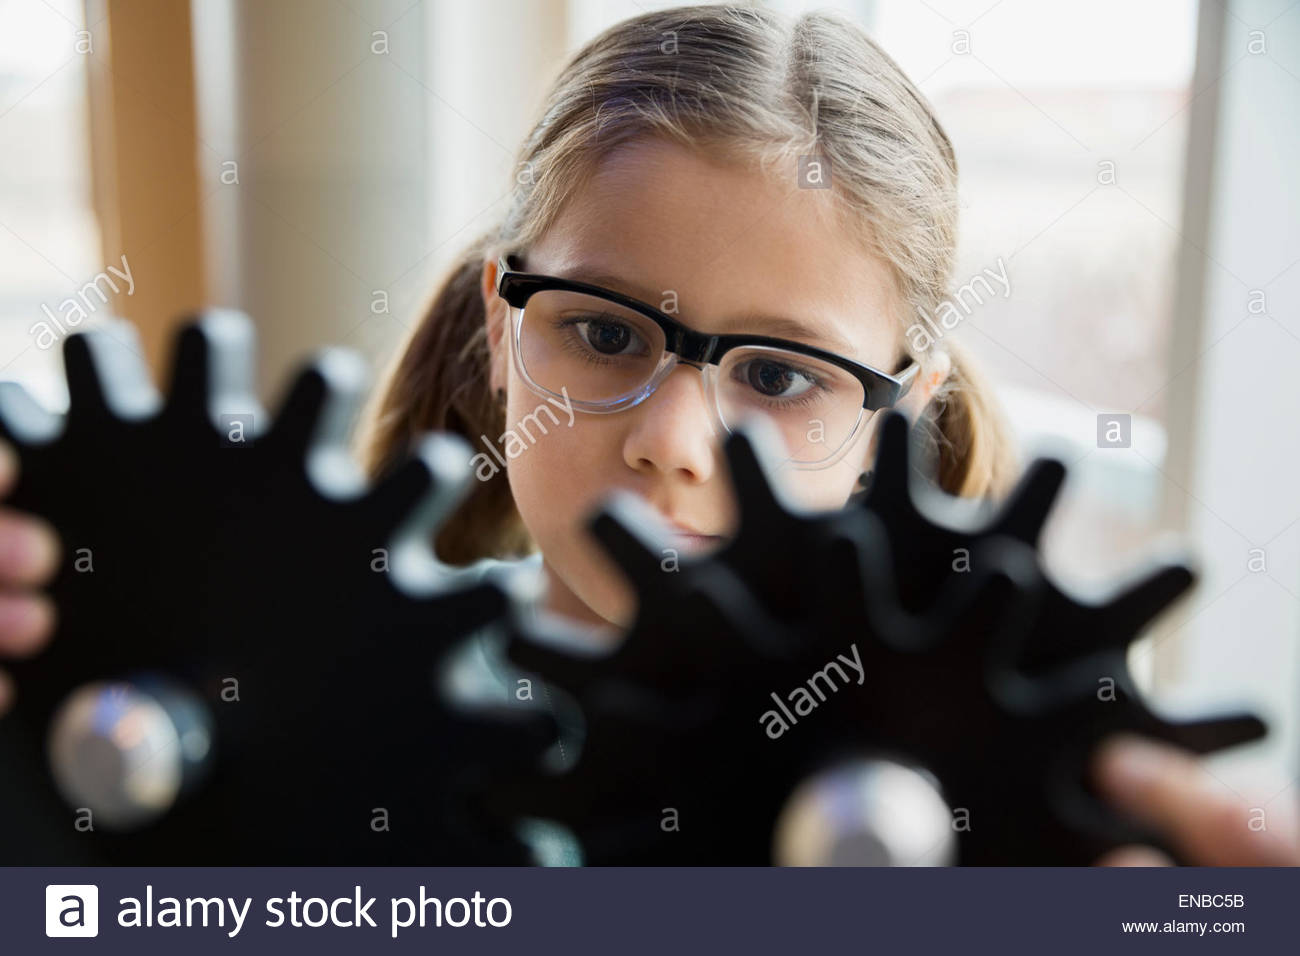 Curious girl examining cog gears at science center - Stock Image